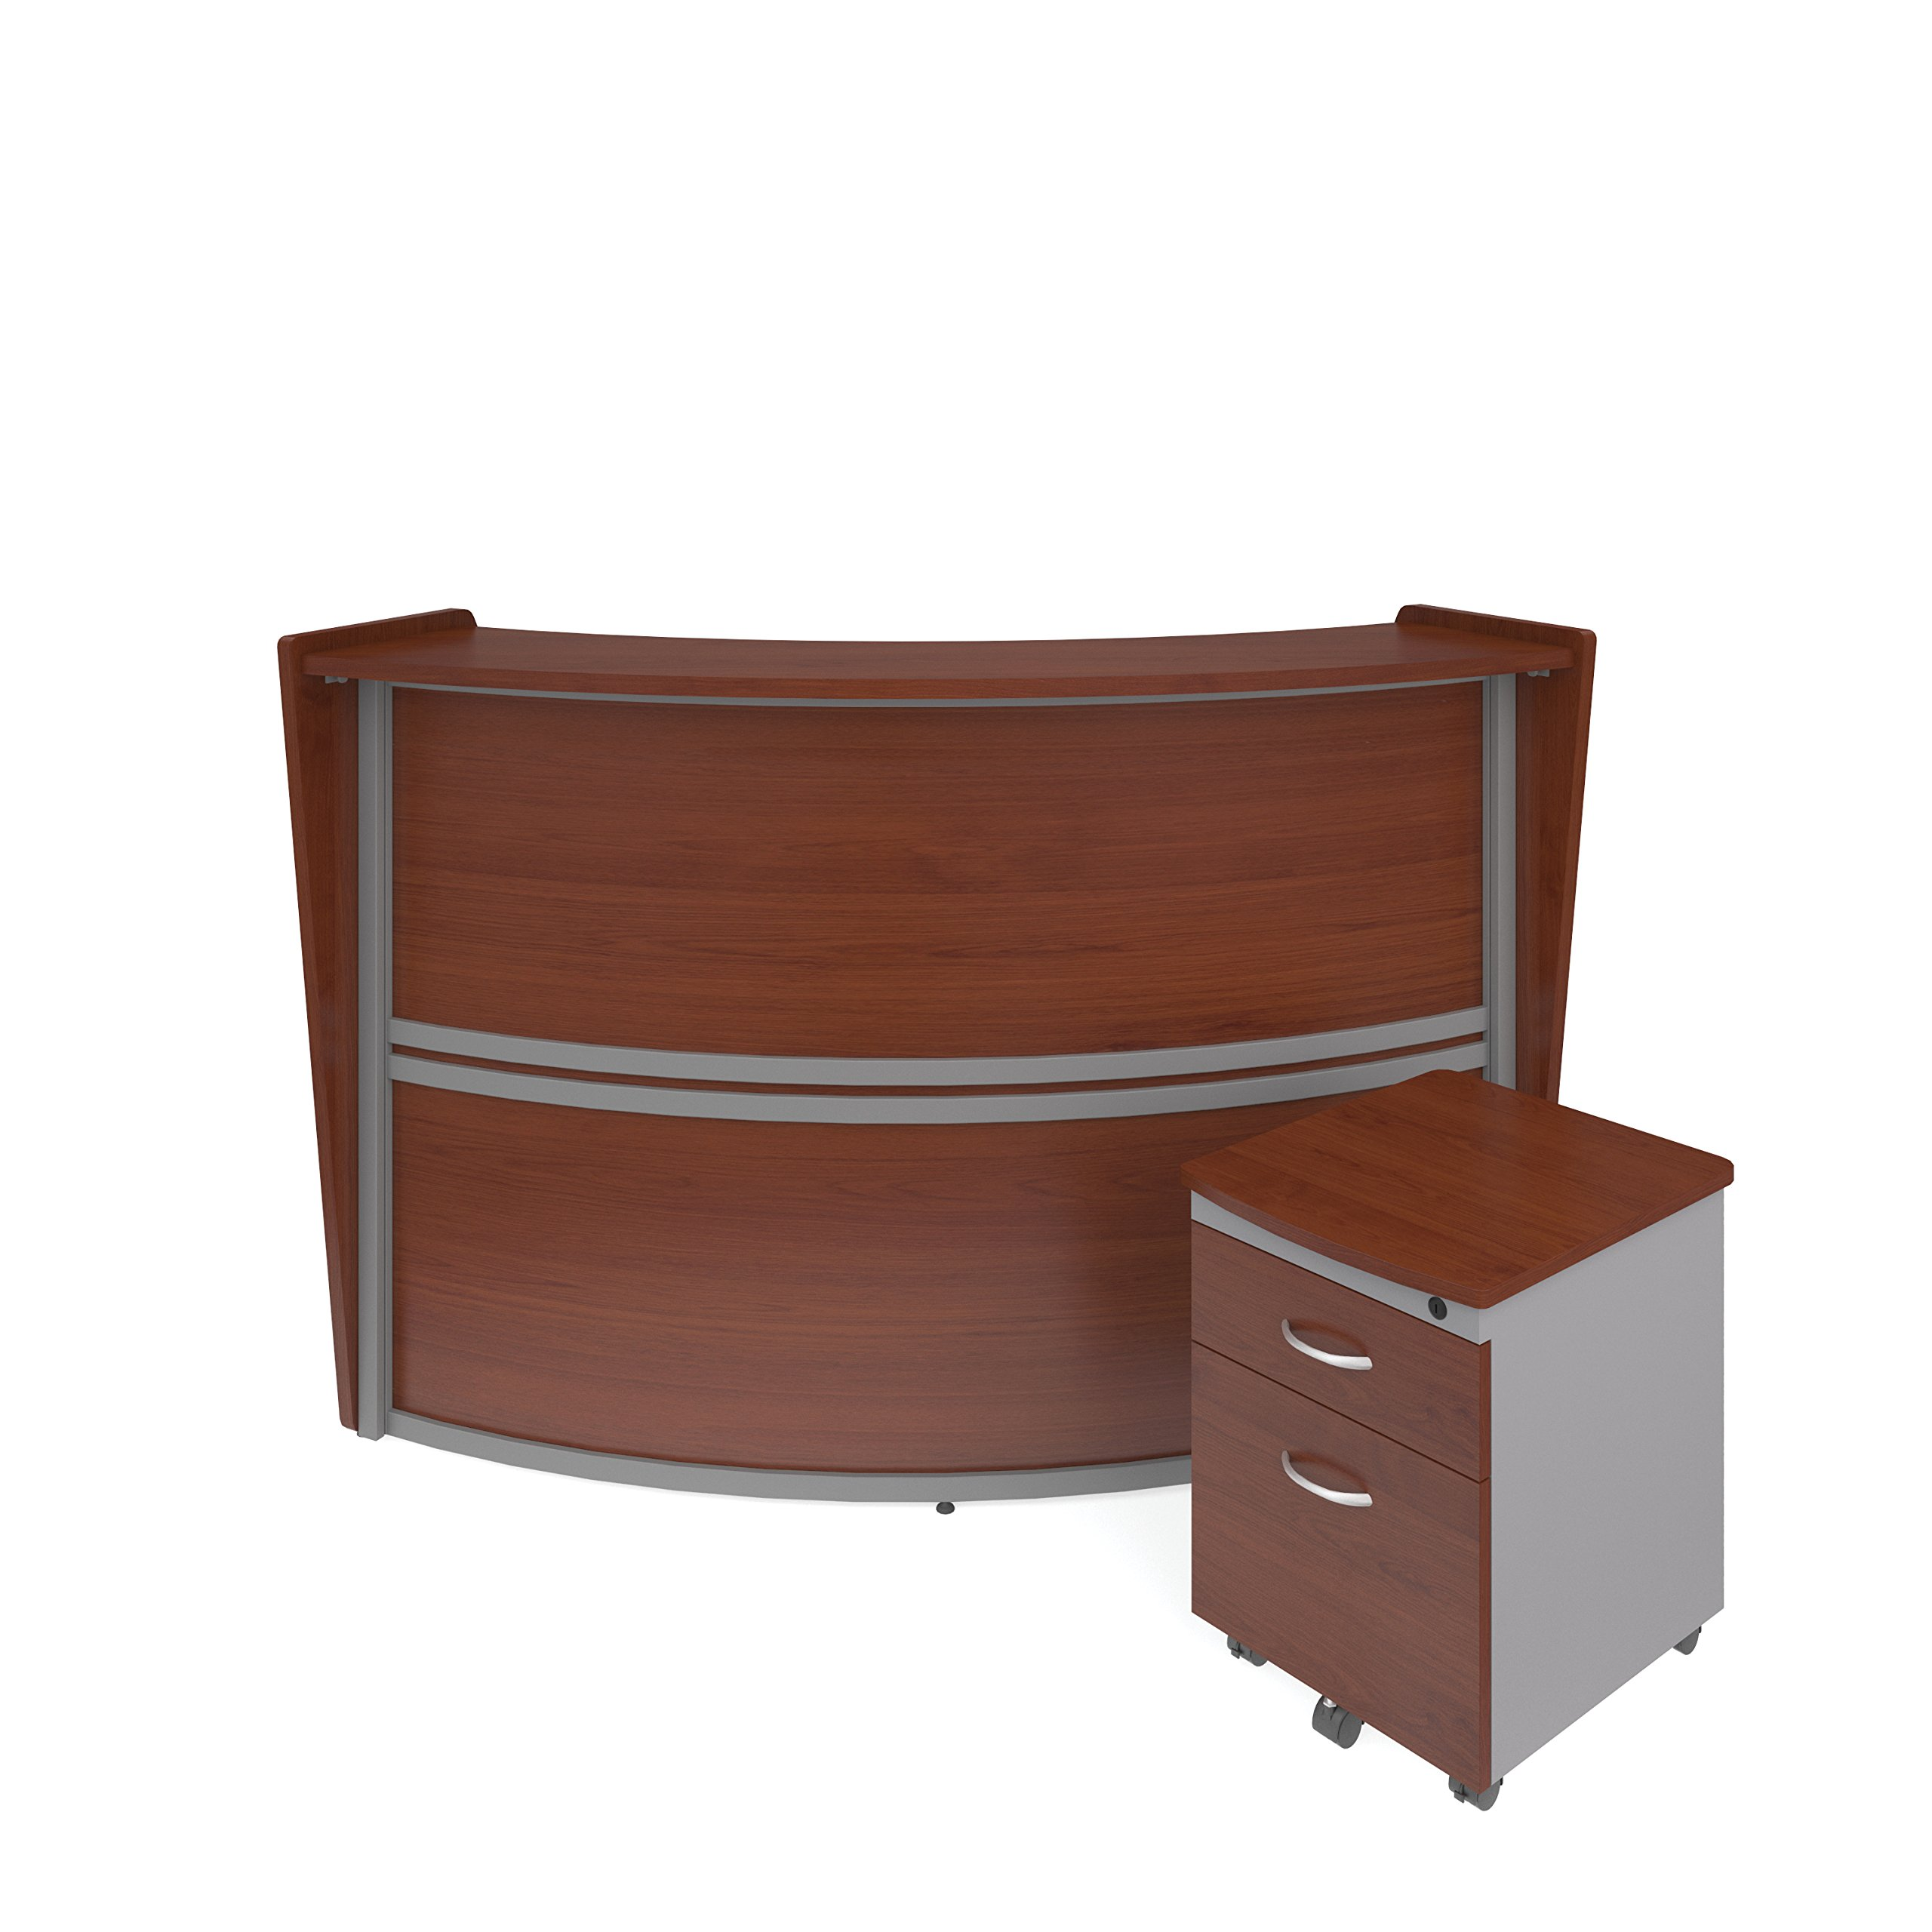 OFM Marque Series Single-Unit Curved Reception Station Package - Office Furniture Reception/Secretary Desk with Cherry Pedestal (PKG-55290-CHY)